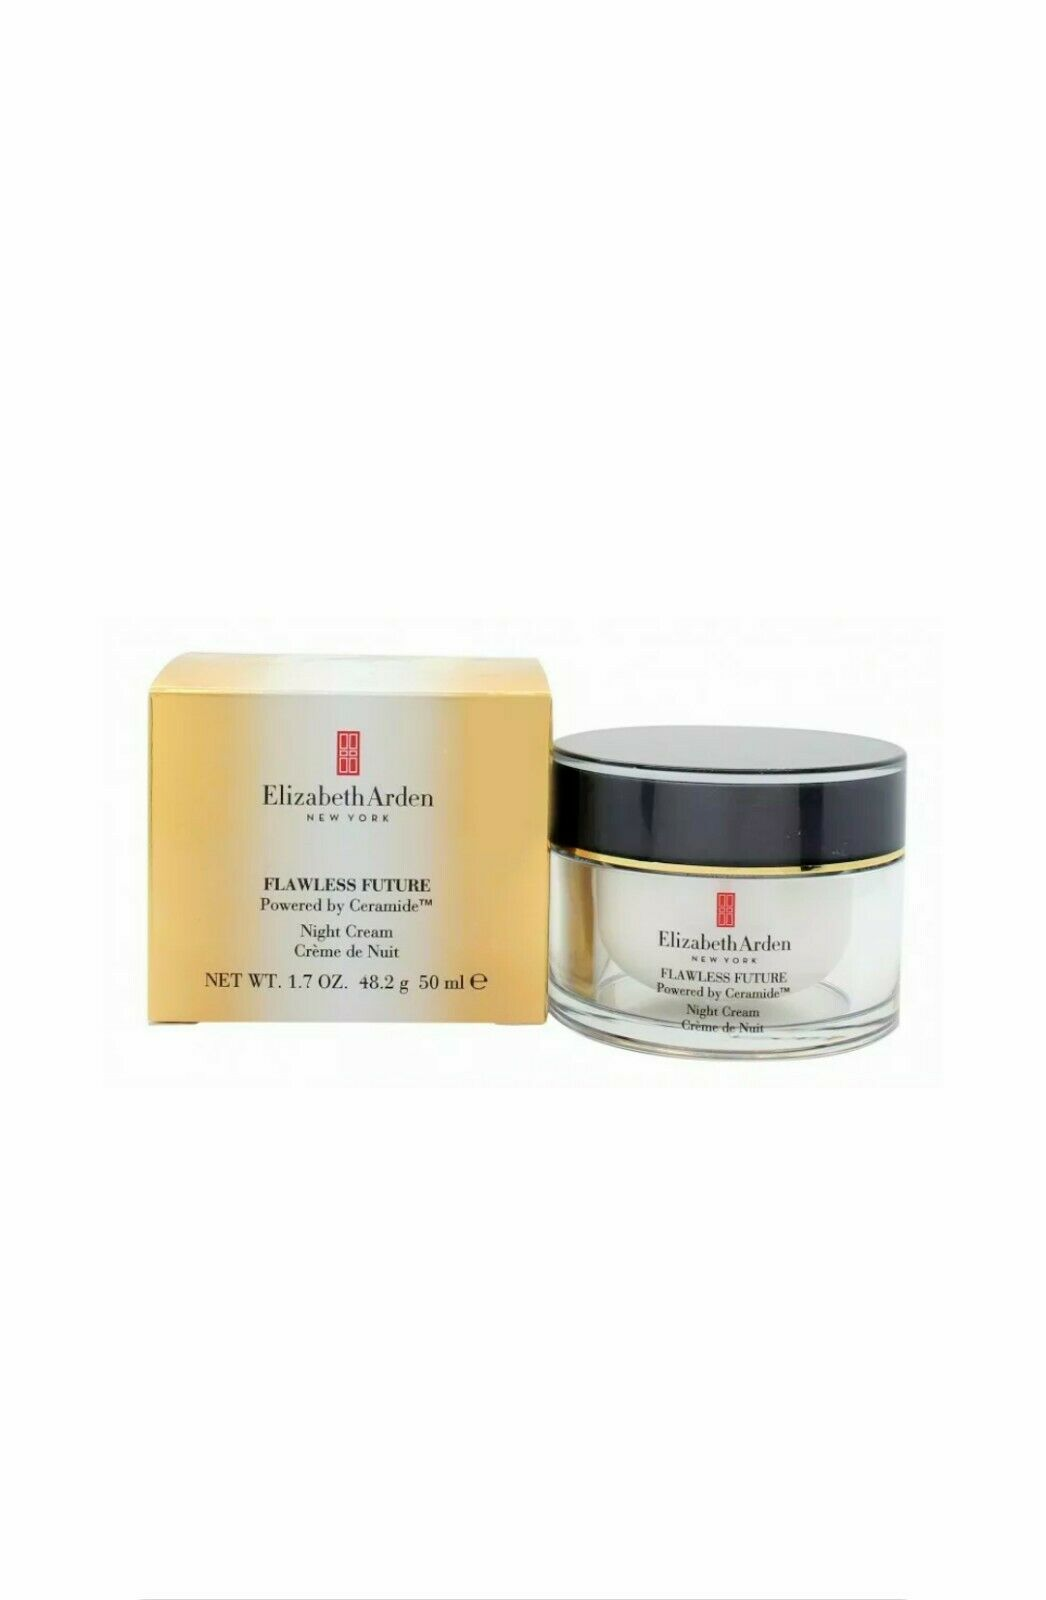 Elizabeth Arden Flawless Future Powered By Ceramide Night Cream 50ml For Sale Online Ebay